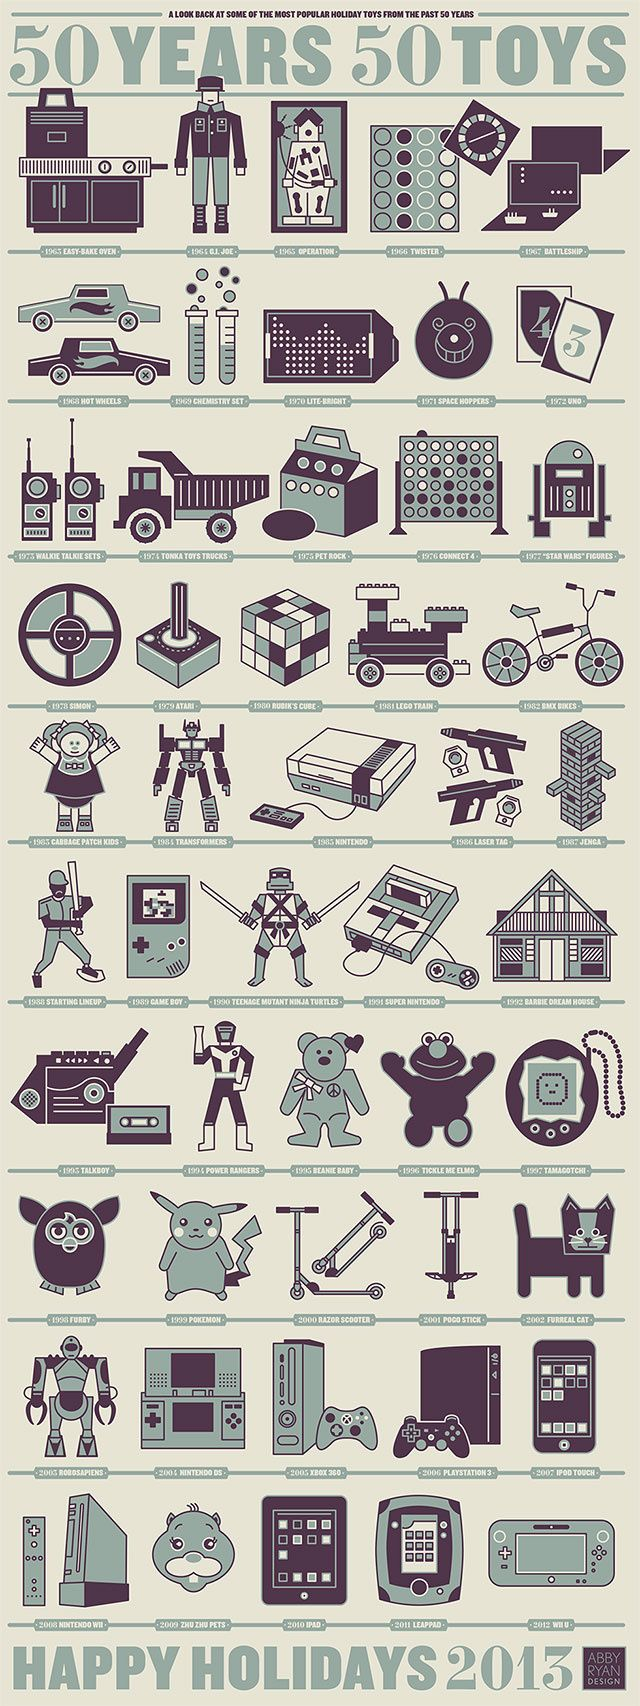 50 Years, 50 Toys [Abby Ryan Design via Laughing Squid]